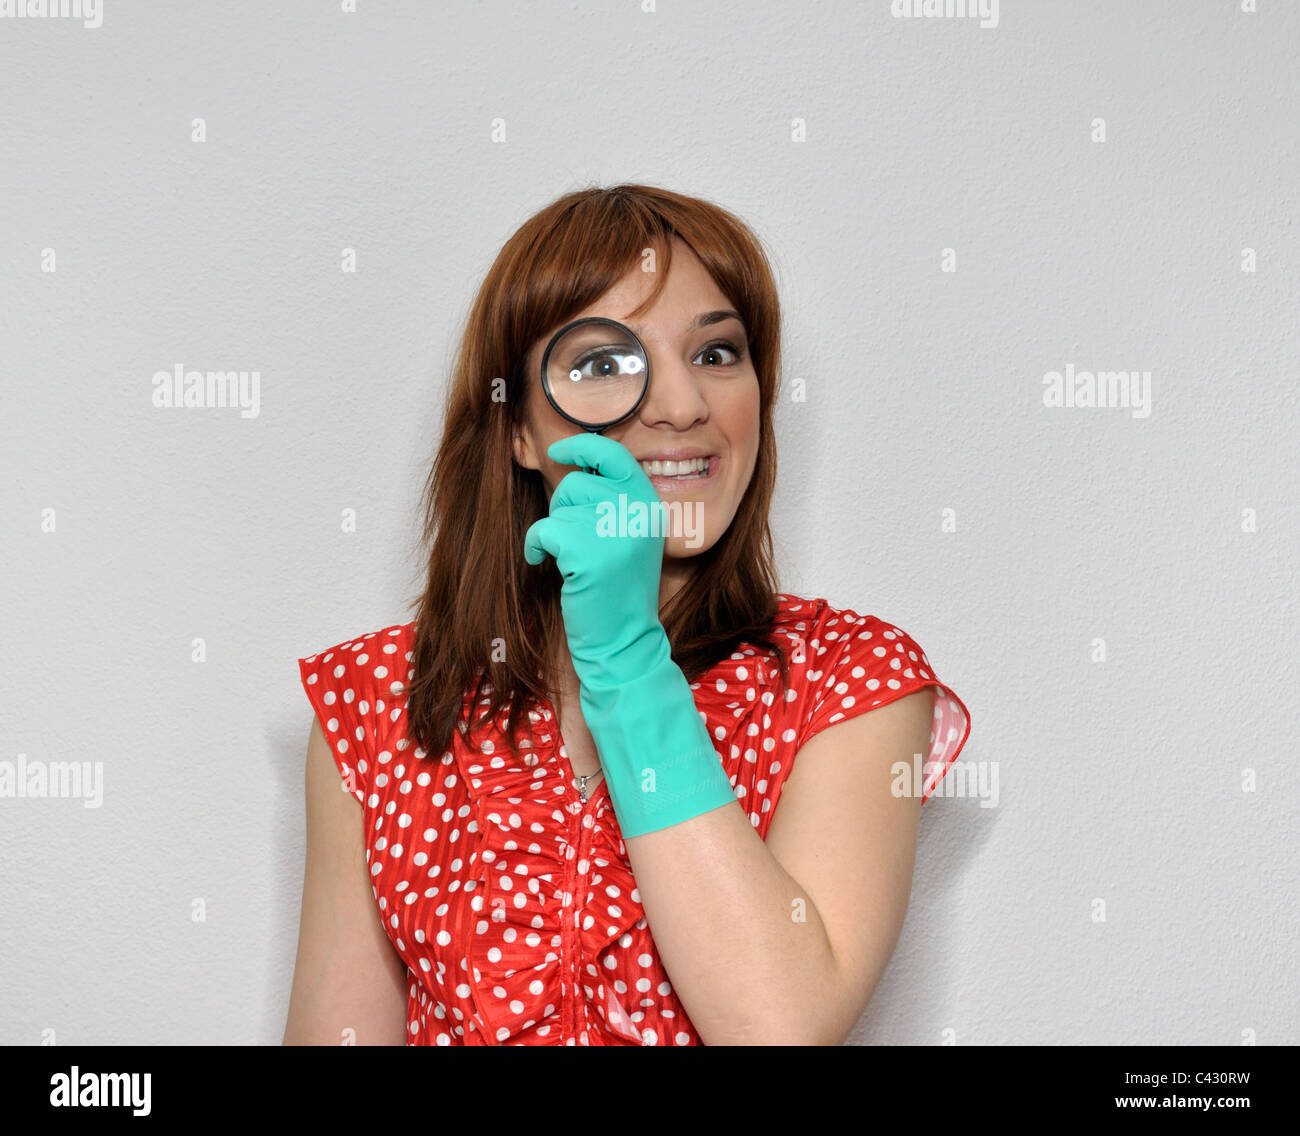 Young woman wearing rubber gloves looking trough magnifying glass - Stock Image